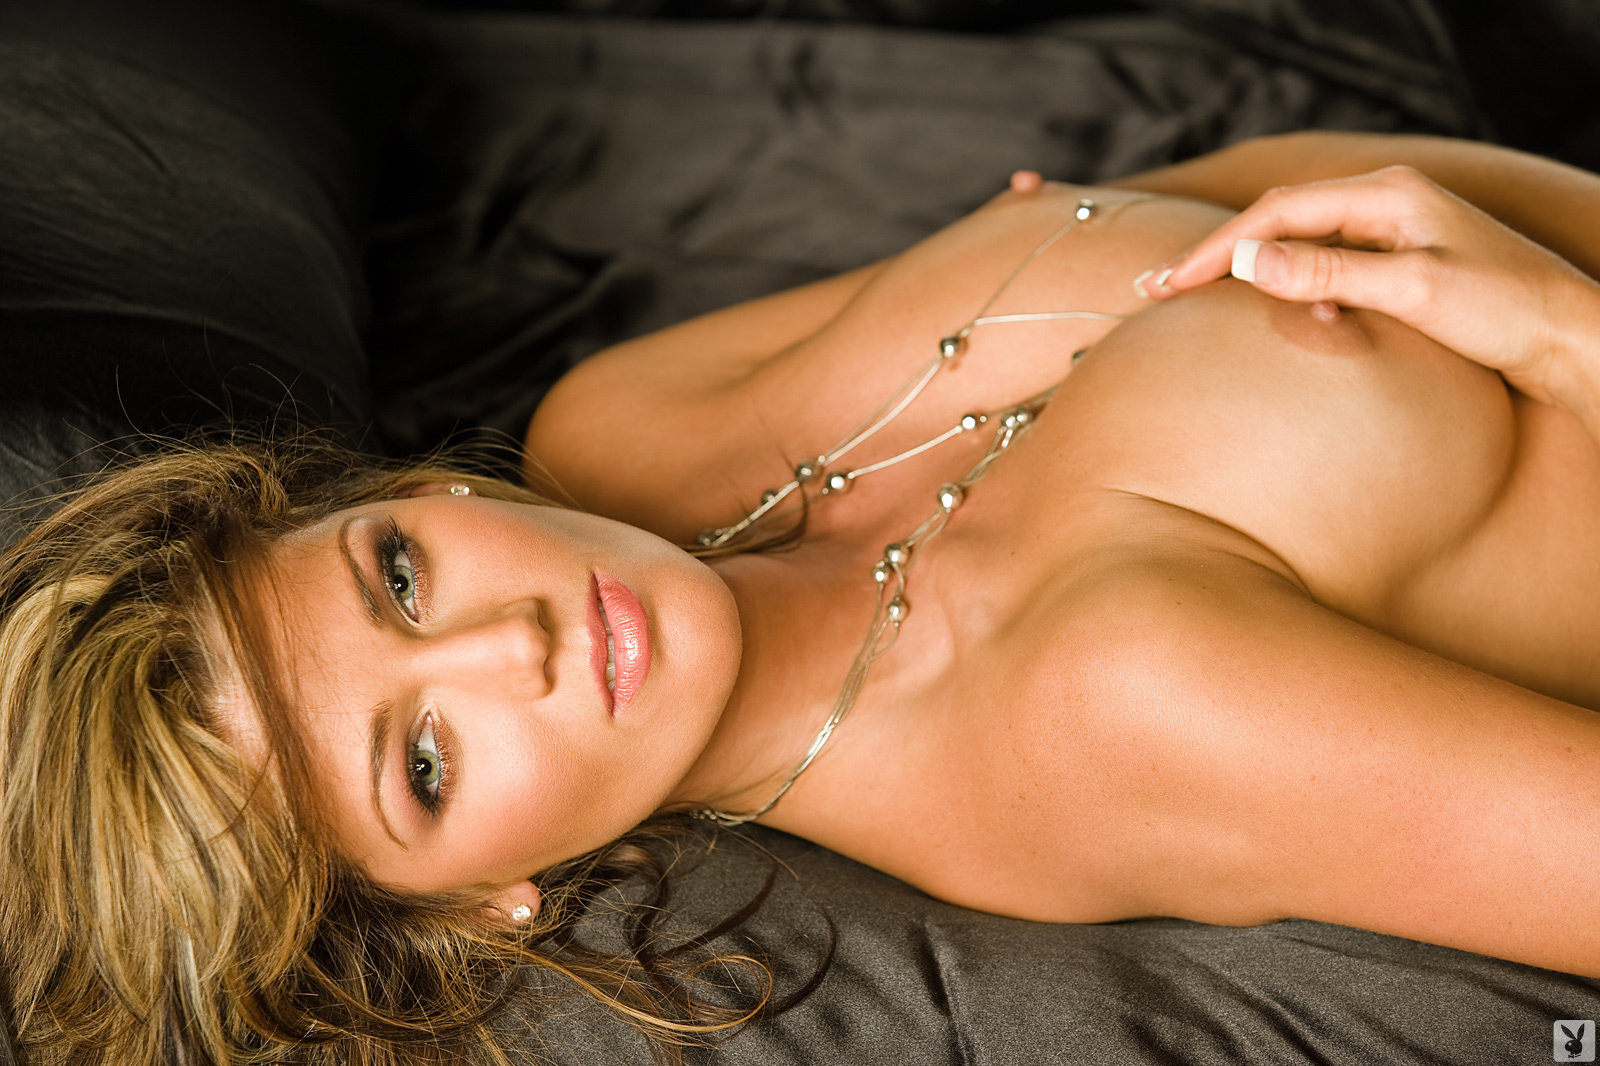 Playmate Exclusive May 2009 Crystal Mccahill0016